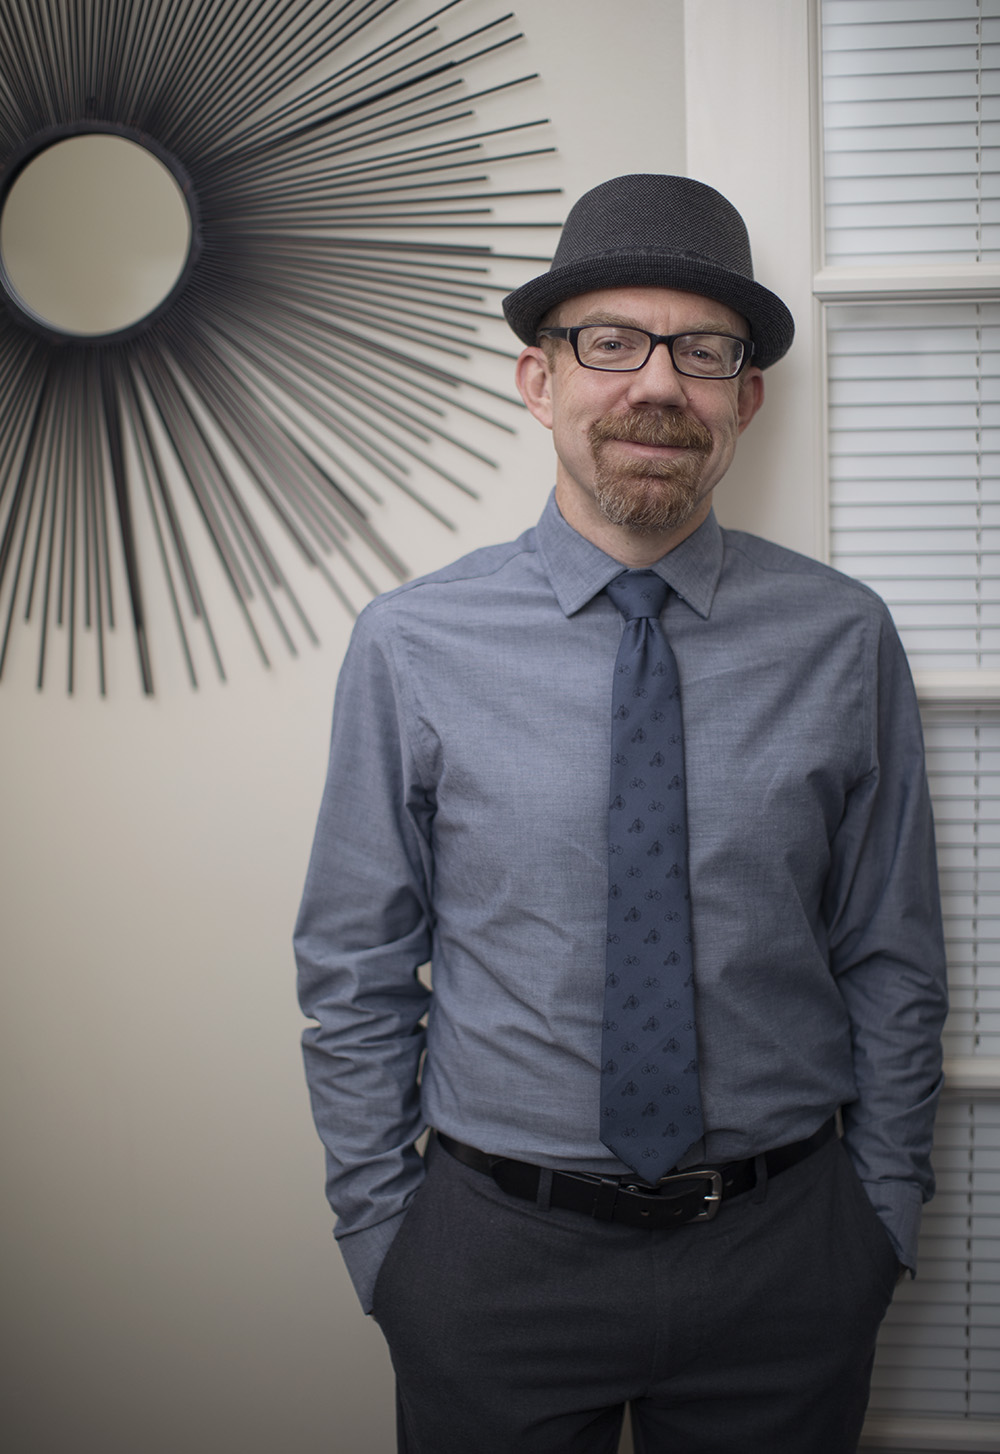 Mike Boren, Business Manager